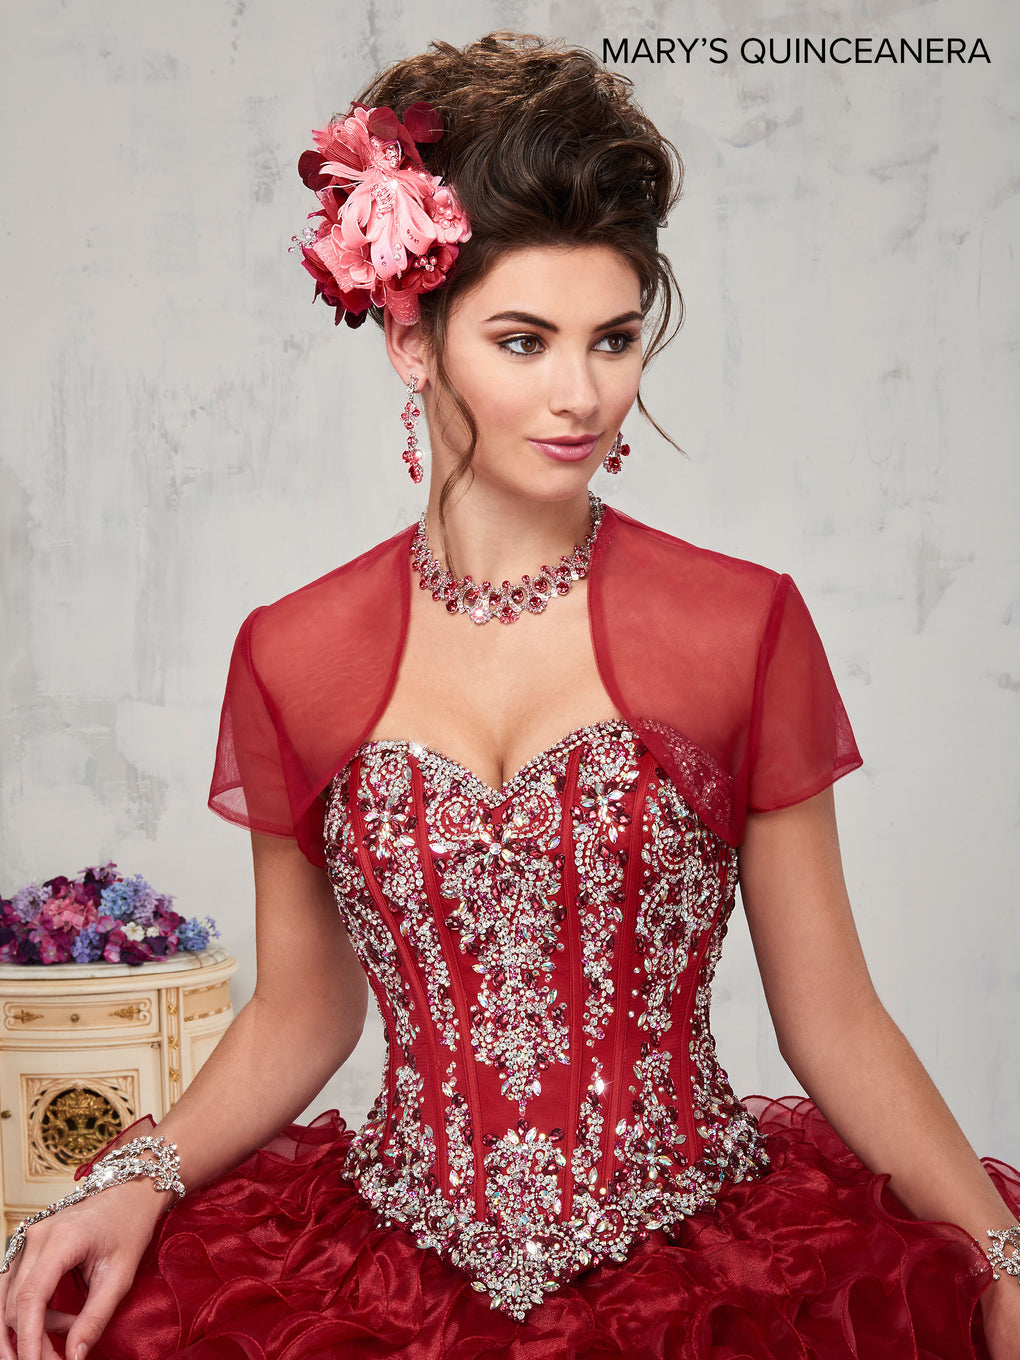 Marys Quinceanera Dresses in Dark Red or White Color